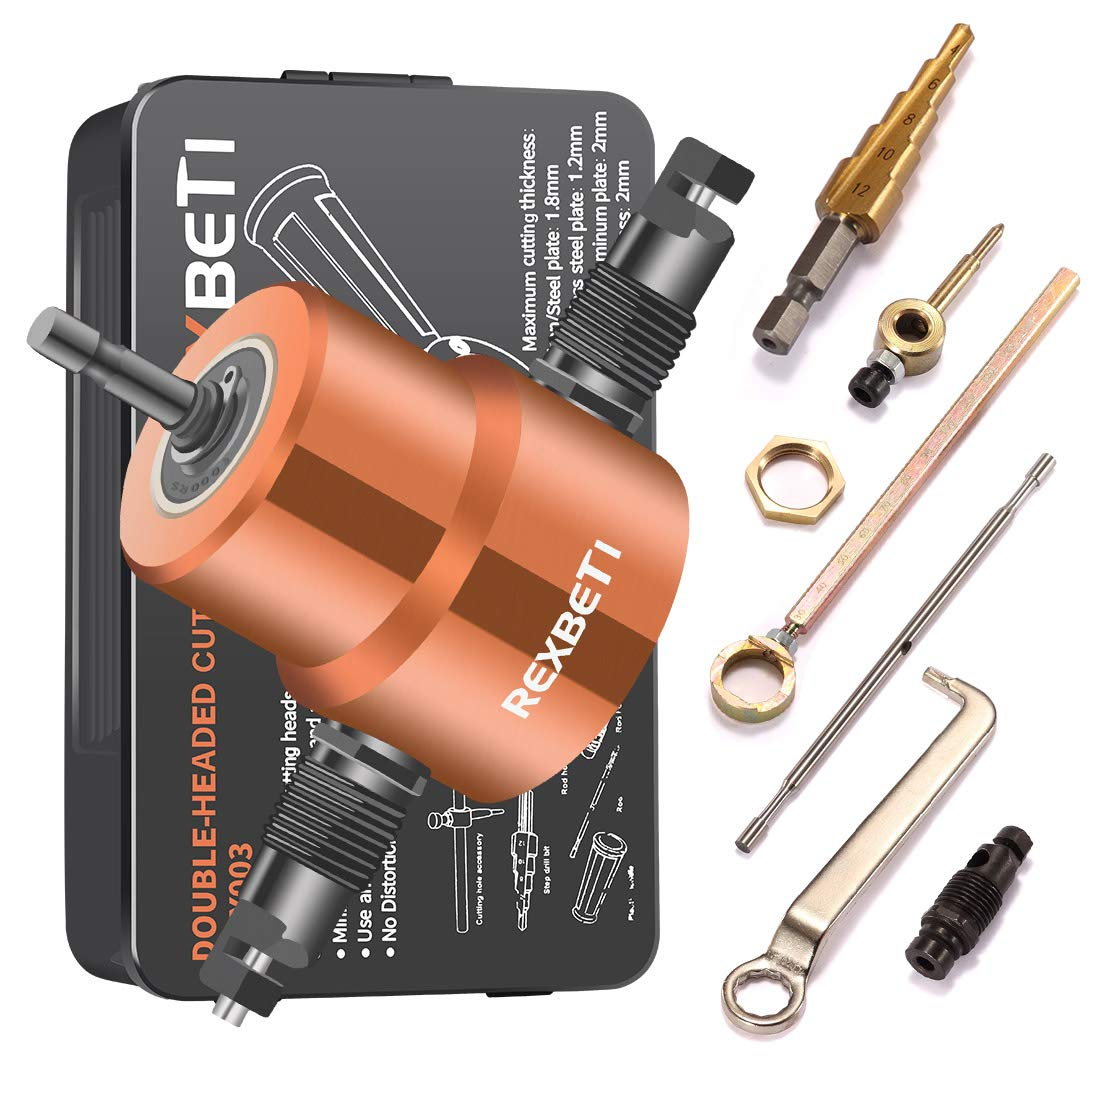 Double Headed Sheet Metal Nibbler REXBETI Drill Attachment Metal Cutter with Extra Punch and Die 1 Cutting Hole Accessory and 1 Step Drill Bit Perfect for Straight Curve and Circle Cutting Gold